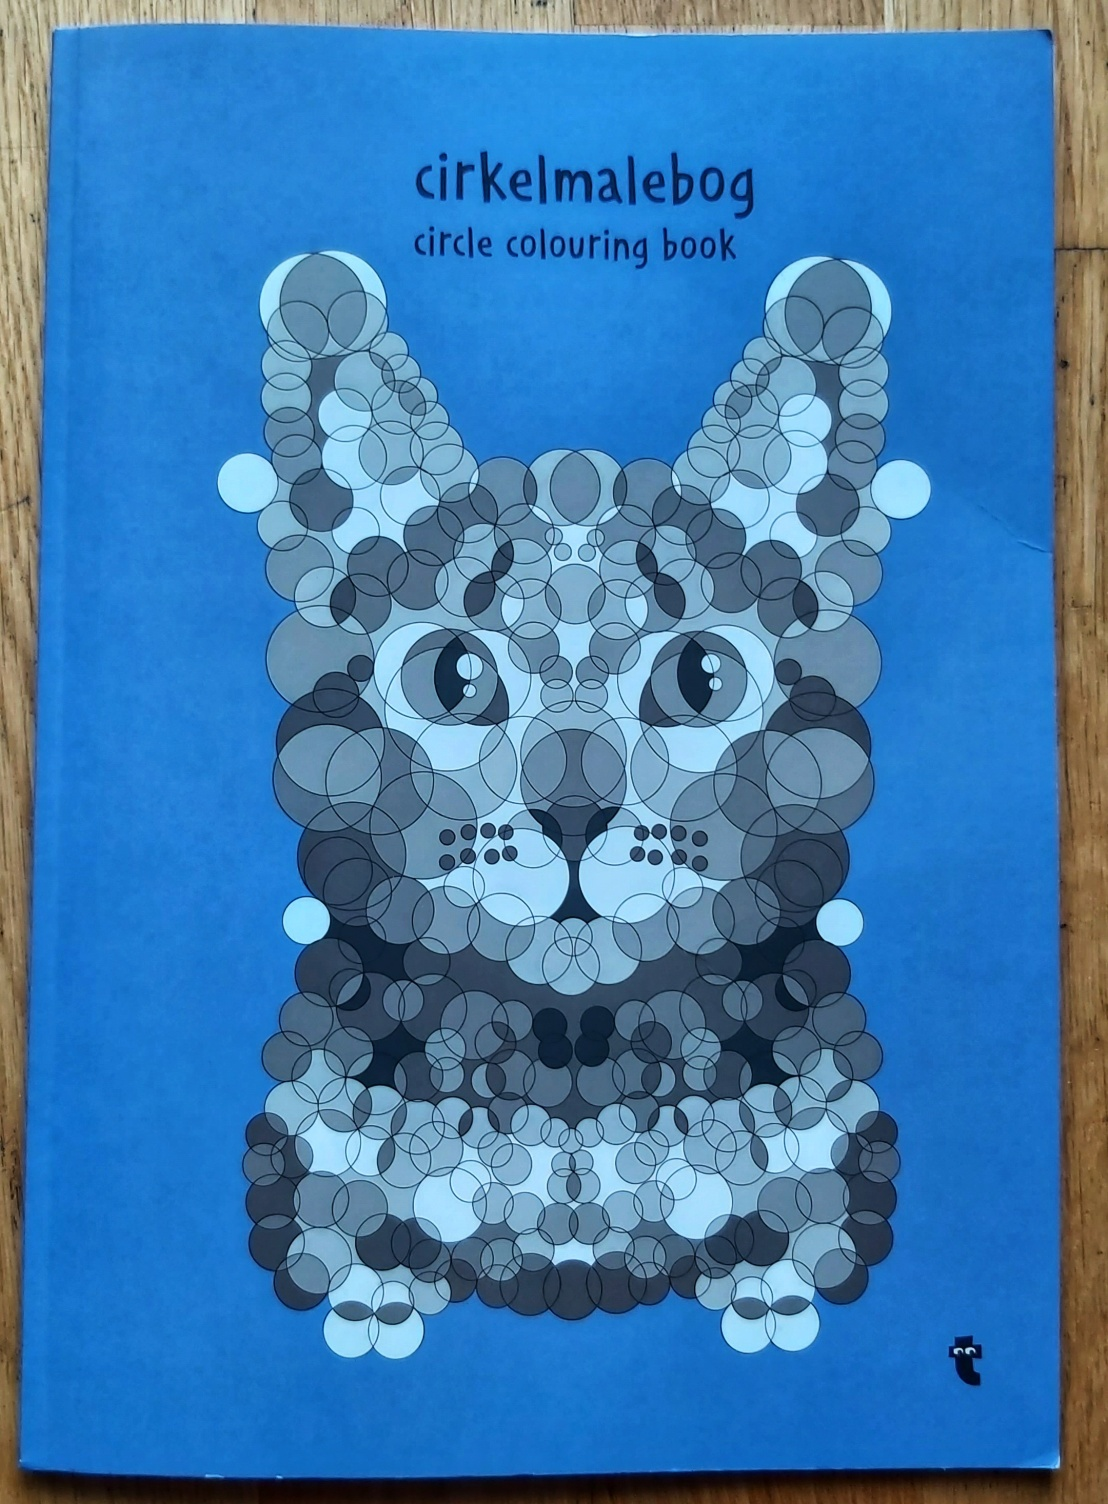 A book with circle numbers colouring pages